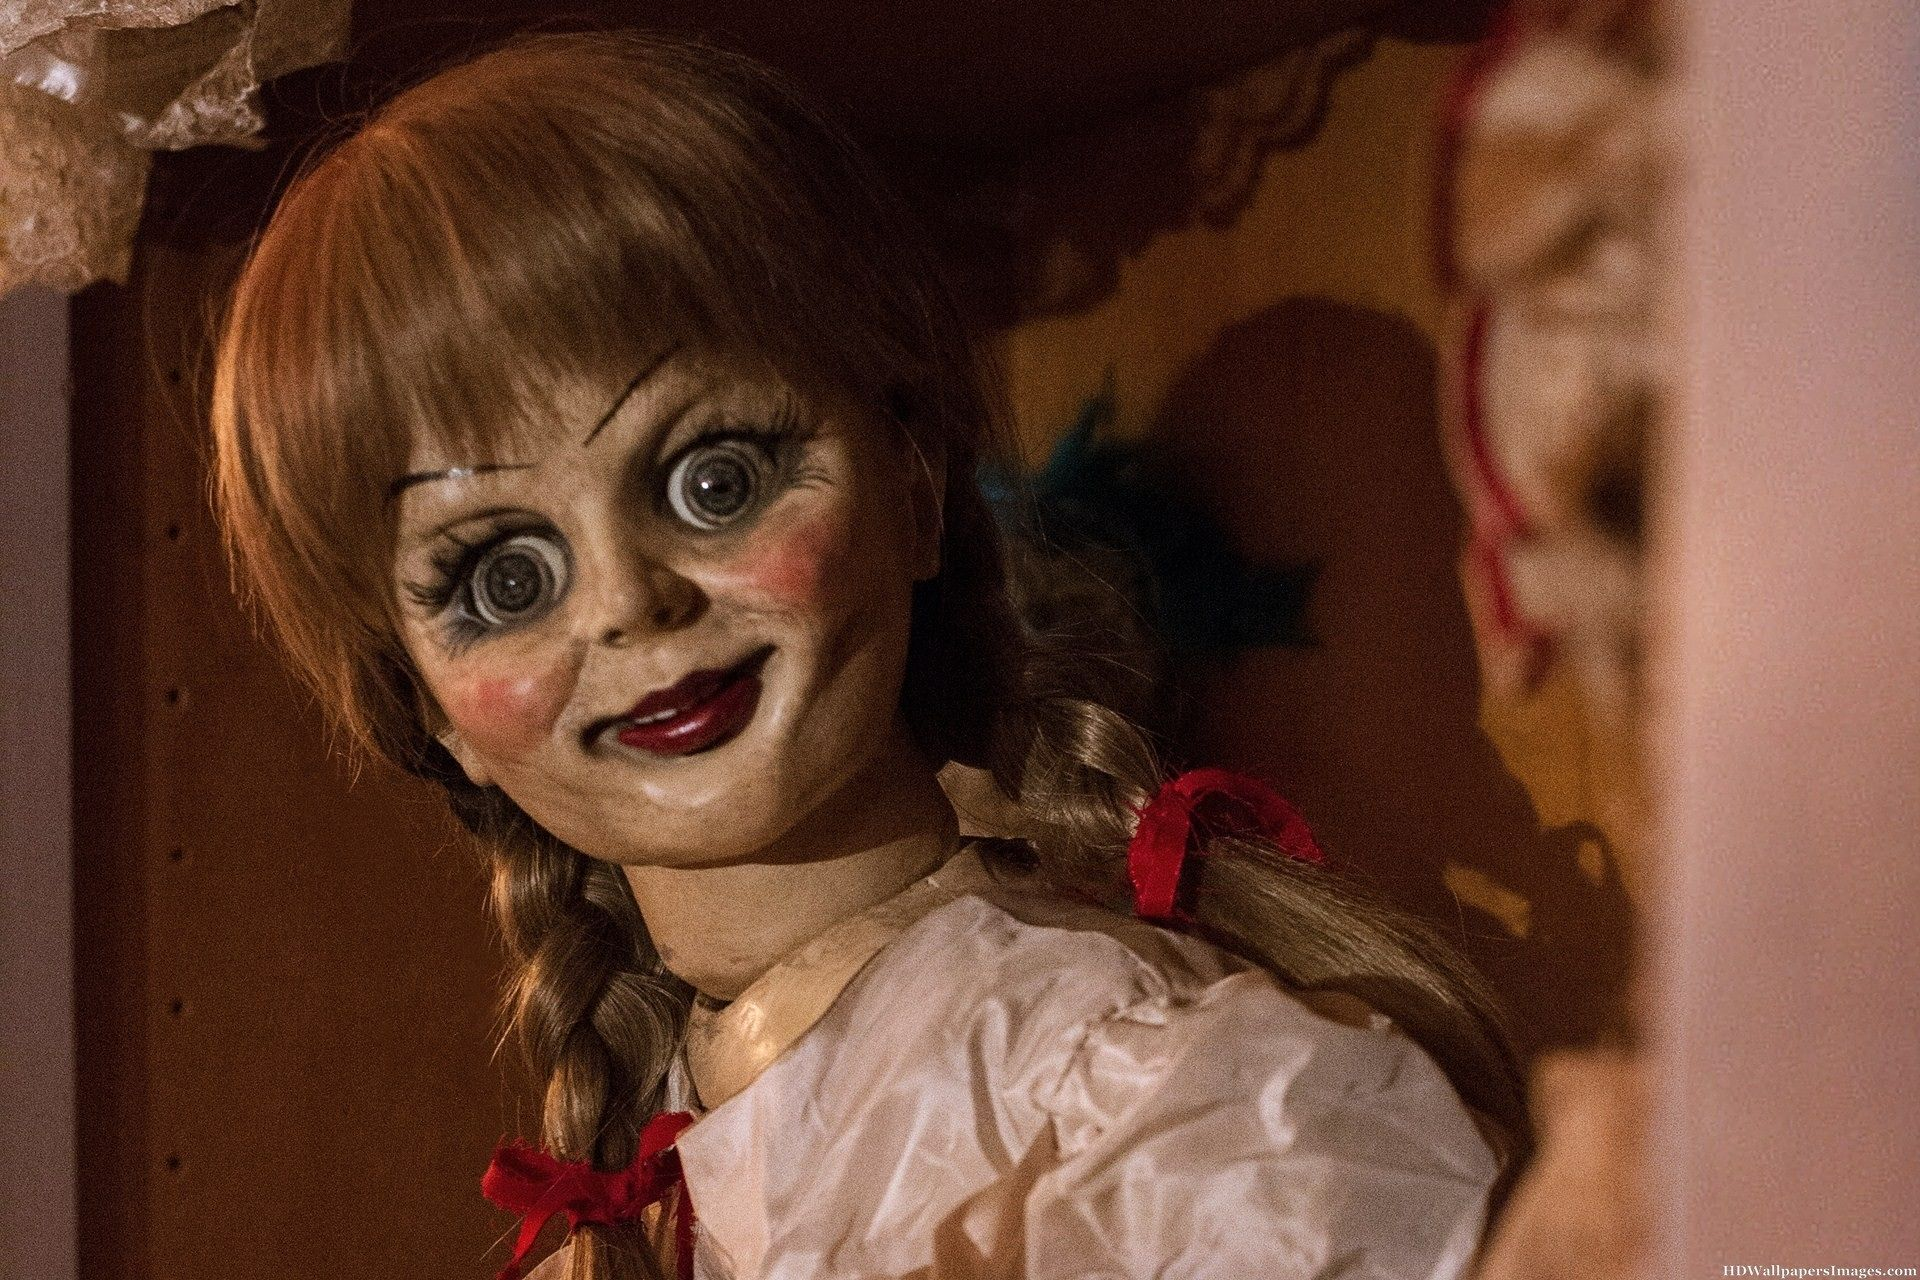 An Encounter With Annabelle, the Real-Life Haunted Doll From